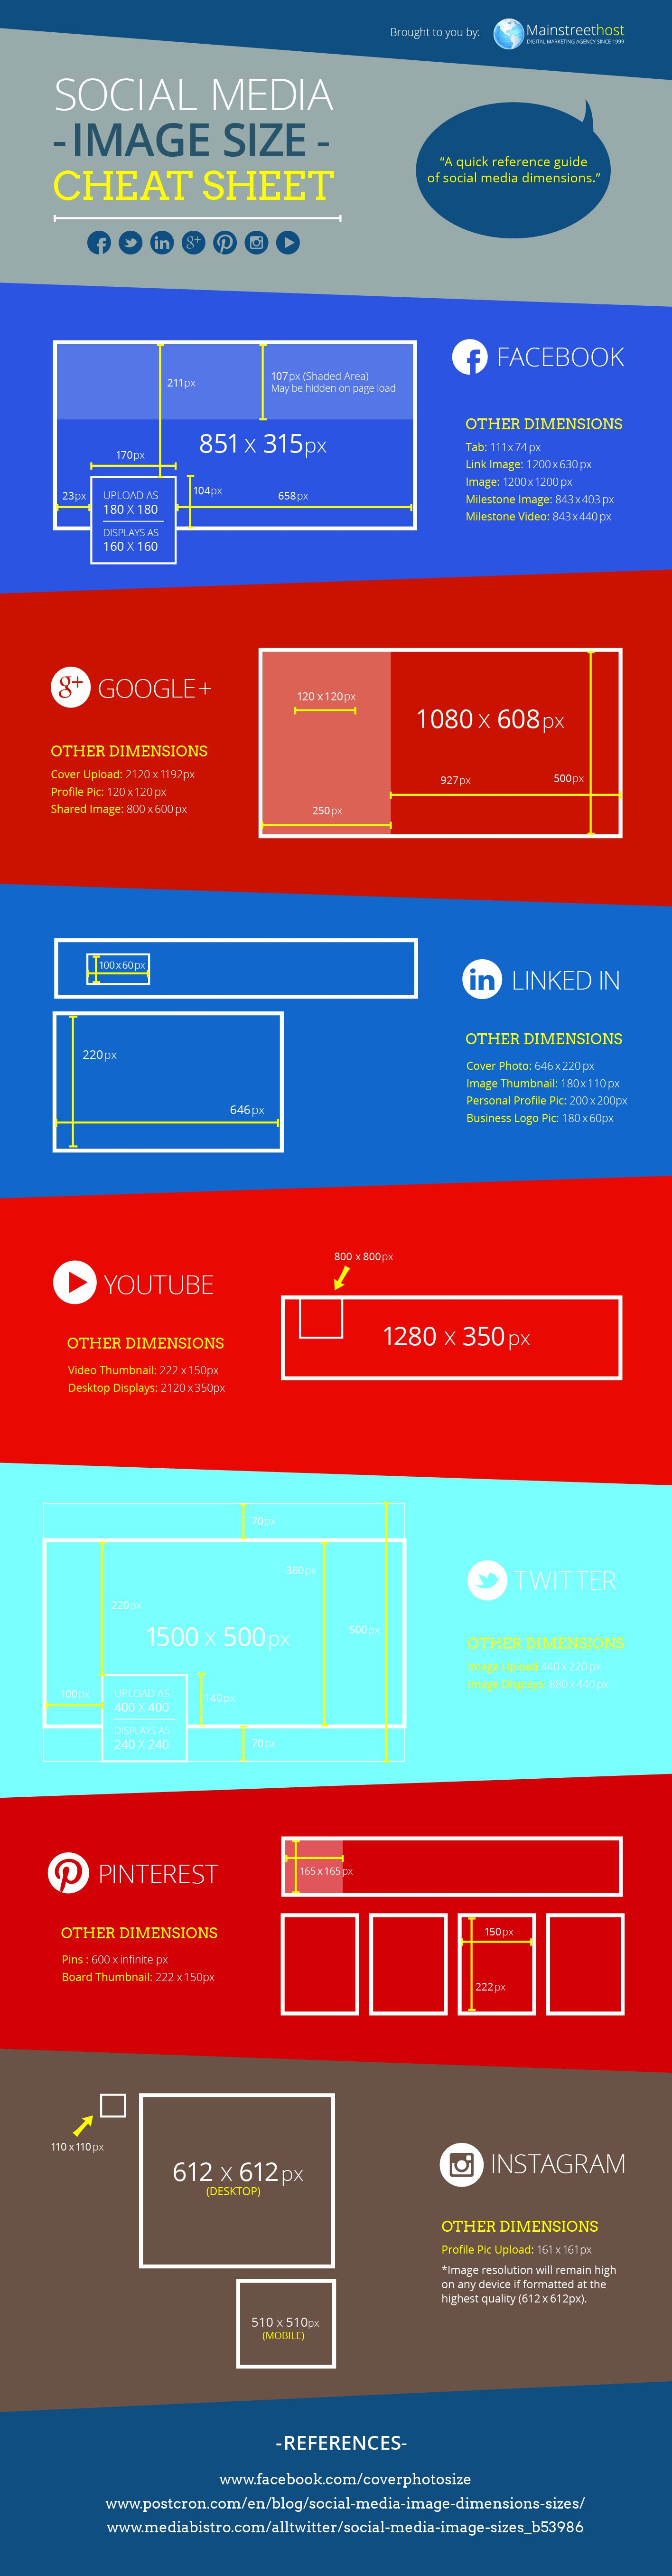 Your Definitive Guide To Social Media Image Sizes - Facebook ad size template